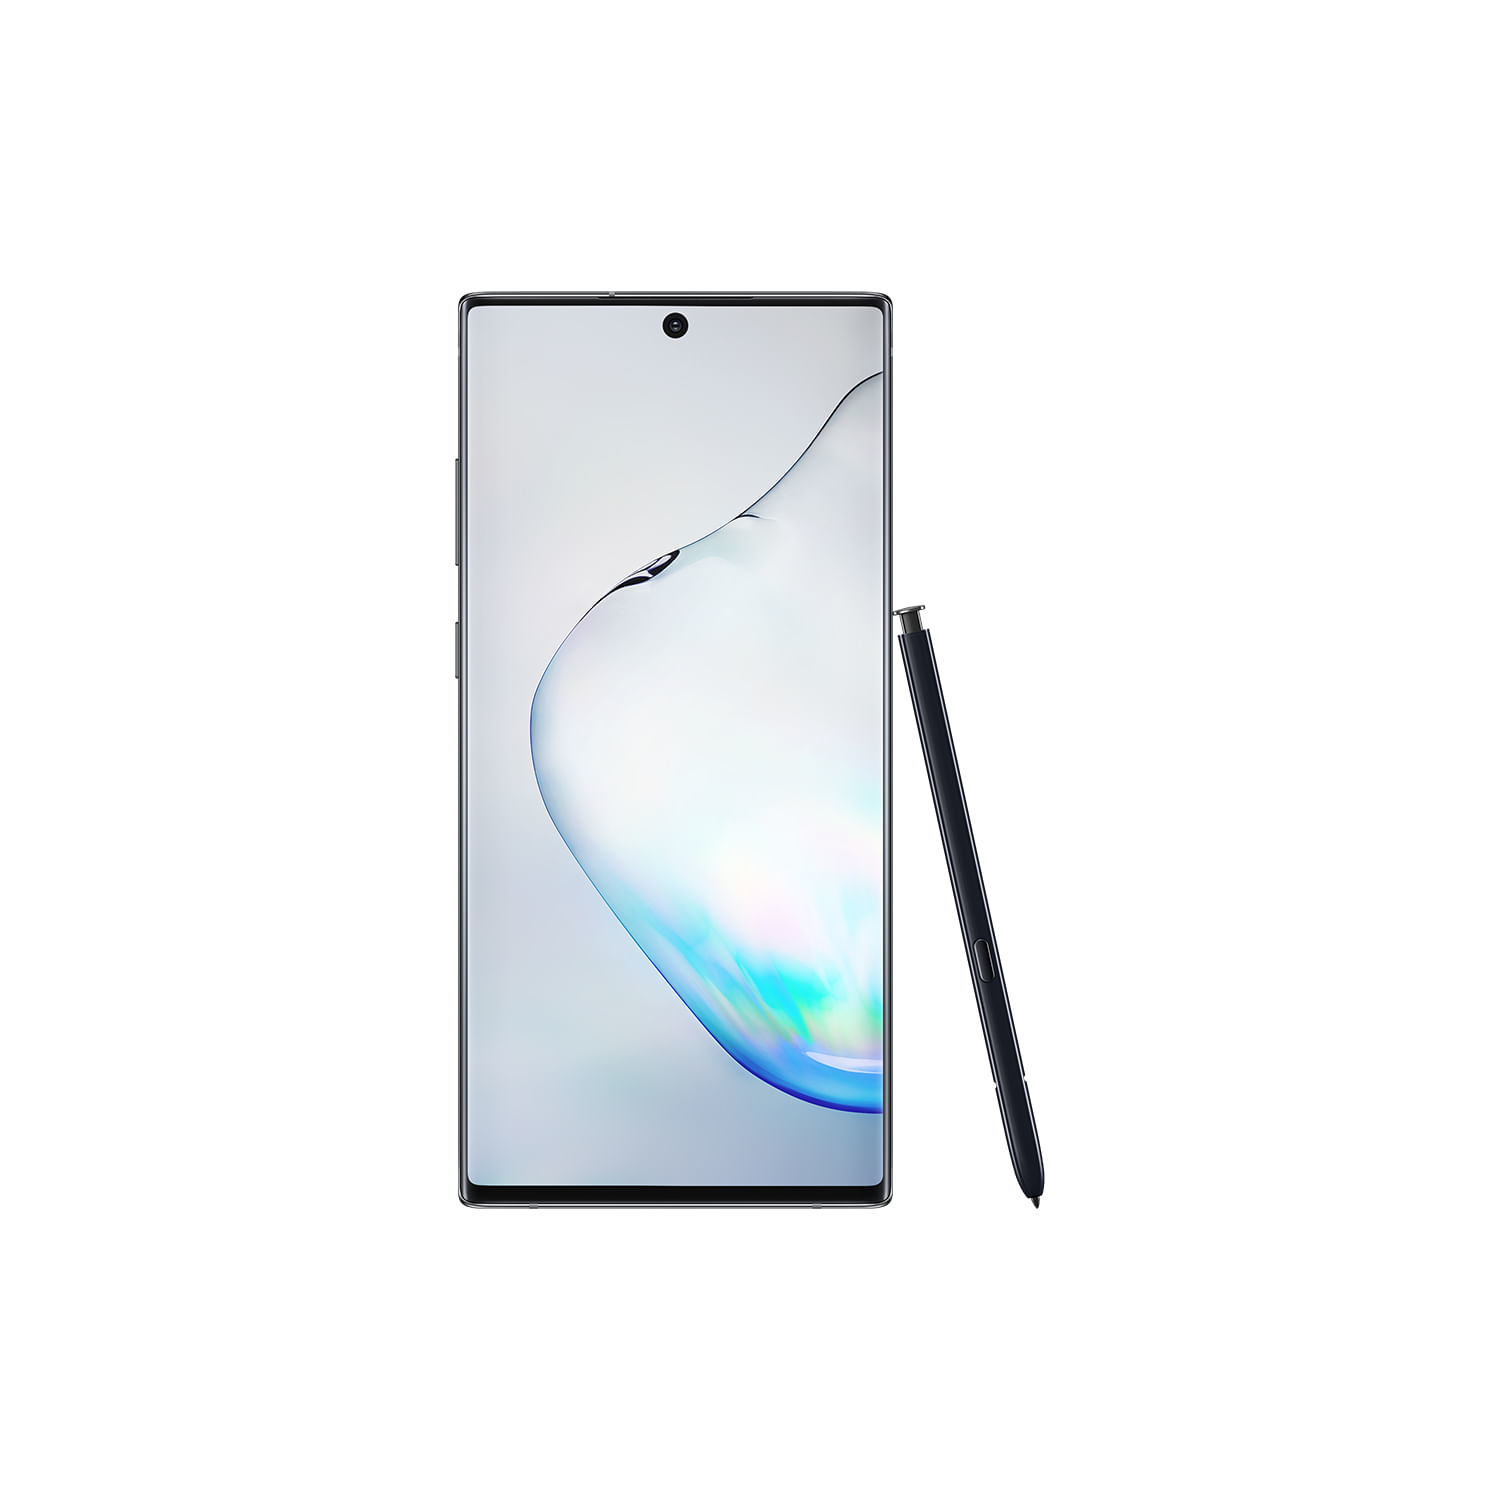 Smartphone Samsung Galaxy Note10+ 256 GB